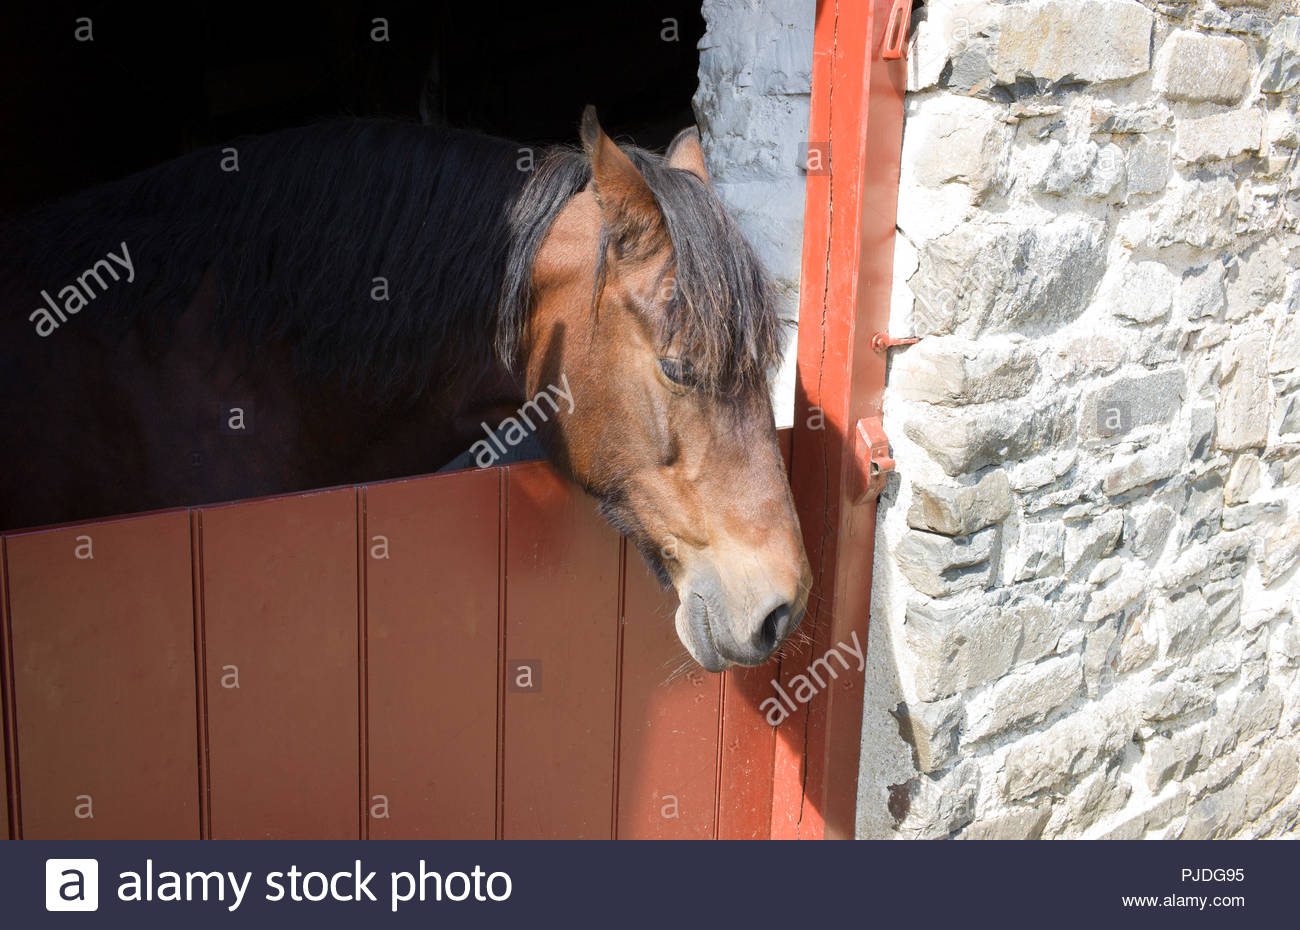 Pedigree 18 year old Welsh Cob horse named 'Gwenni' in the stables at Llanerchaeron country house, Ceredigion, Wales, UK Stock Photo